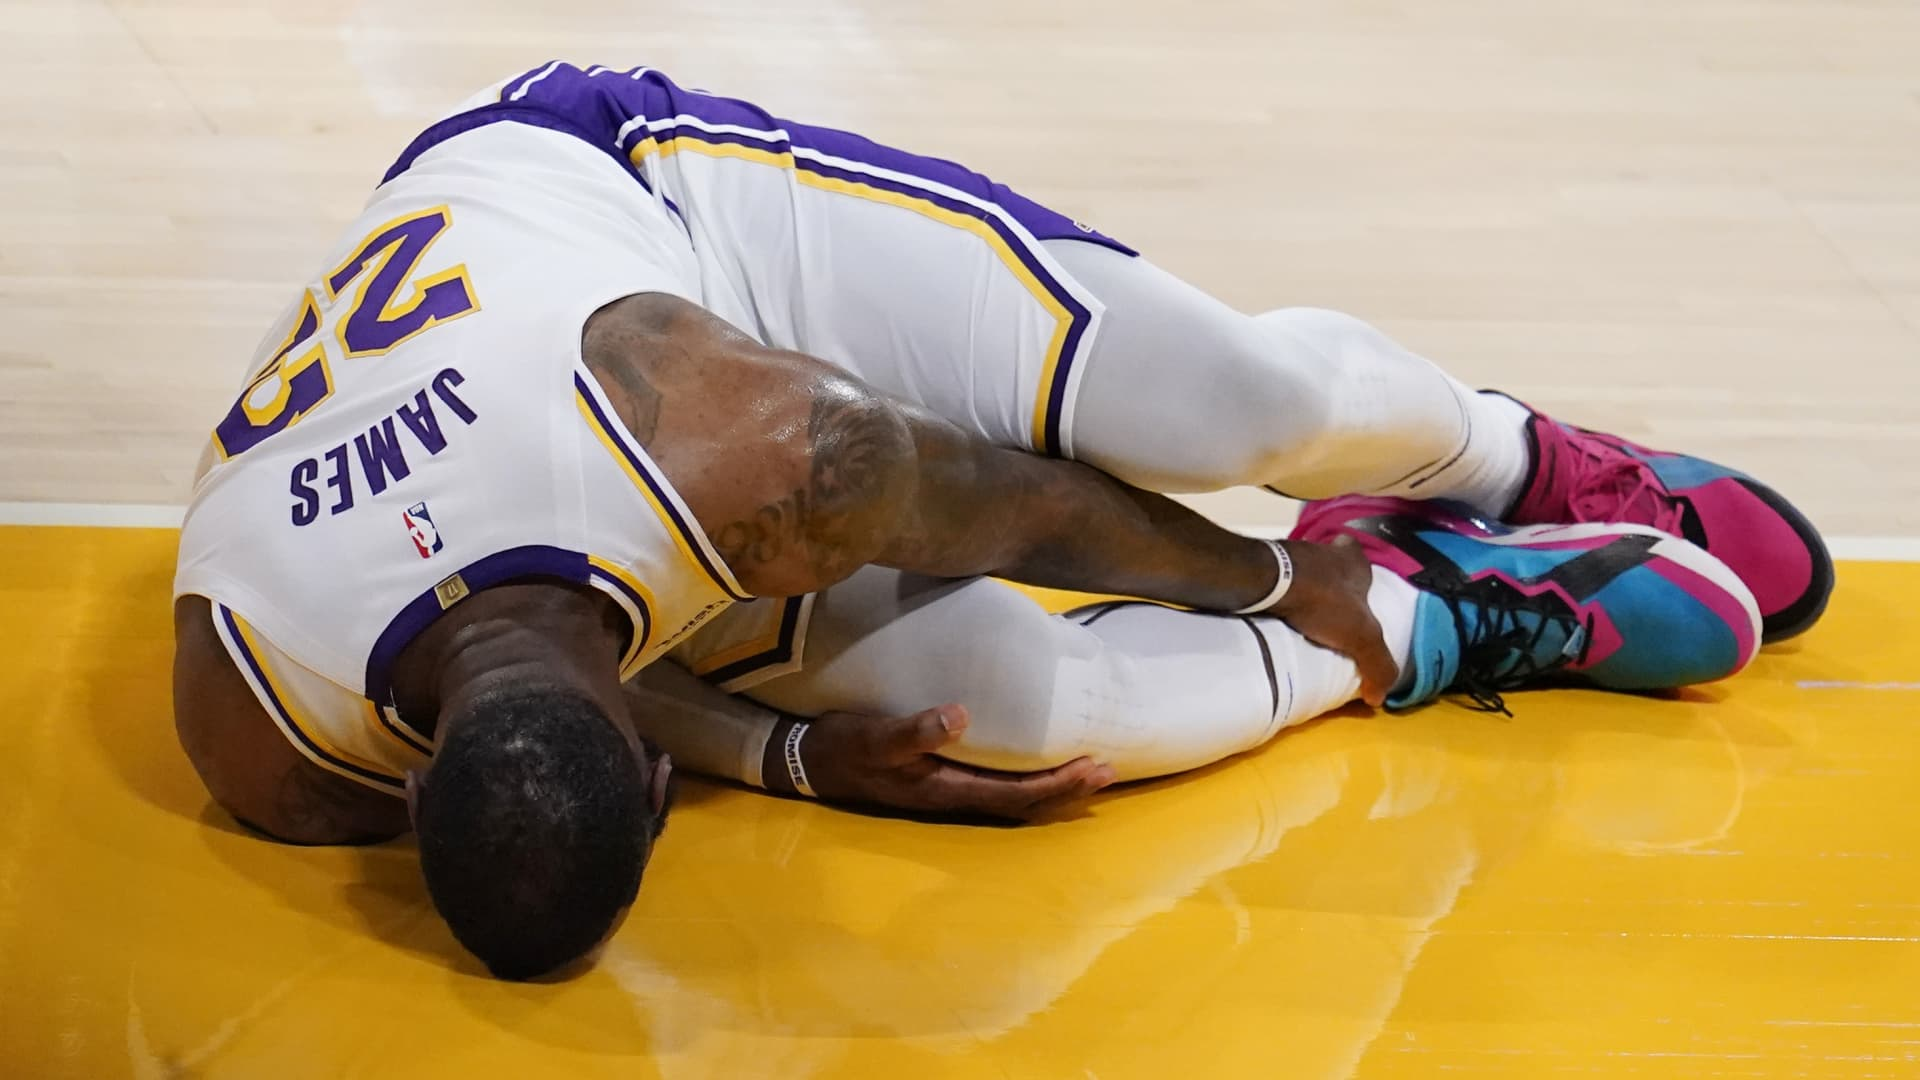 Los Angeles Lakers forward LeBron James holds his ankle after going down with an injury during the first half of an NBA basketball game against the Atlanta Hawks Saturday, March 20, 2021, in Los Angeles.